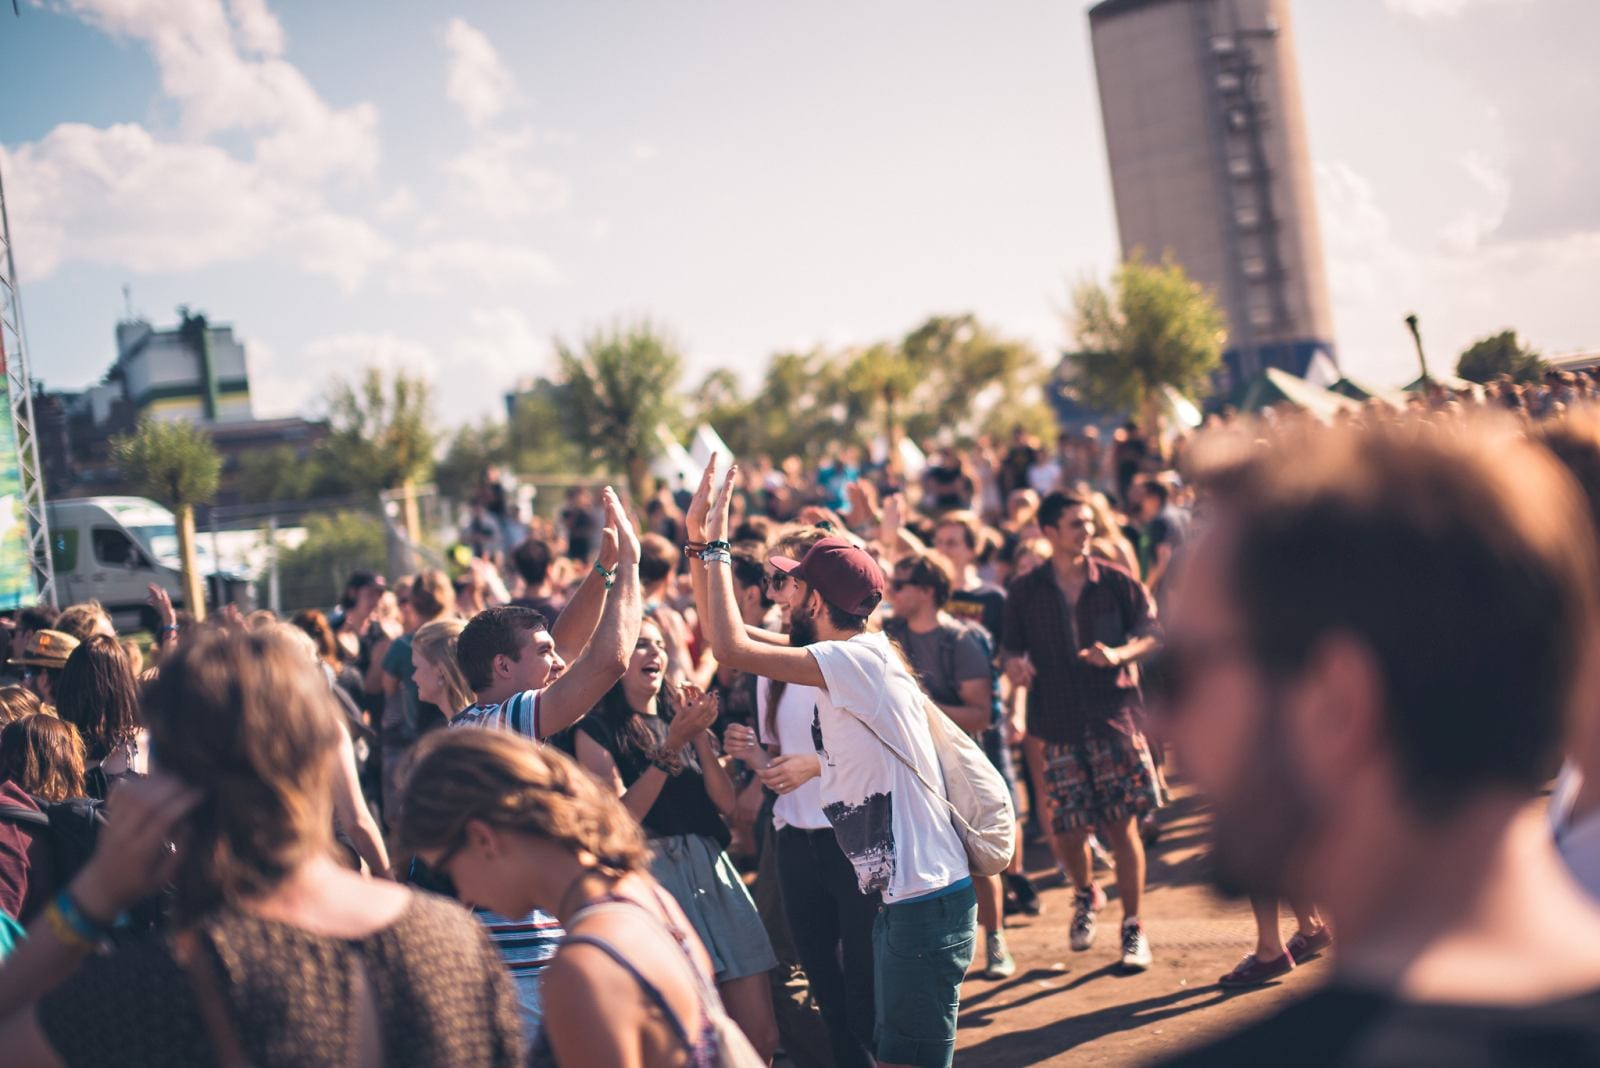 042 ms dockville 2015 wall of love 1 - MS Dockville 2015